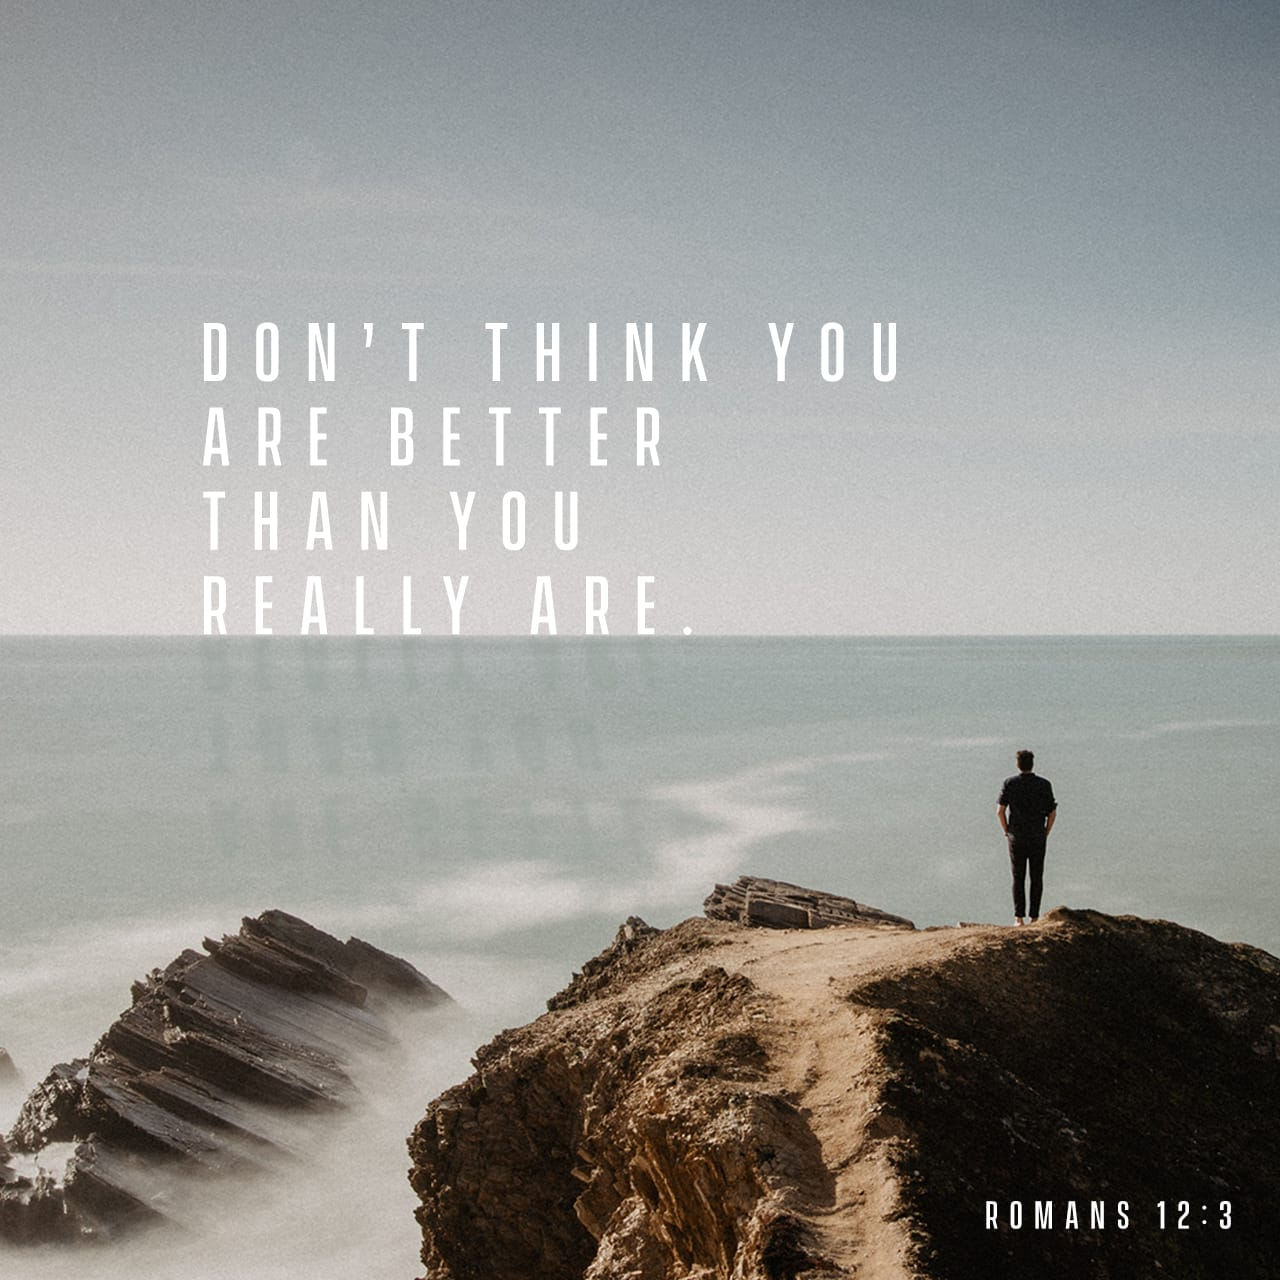 Romans 12:3 For by the grace given me I say to every one of you: Do not think of yourself more highly than you ought, but rather think of yourself with sober judgment, in accordance with the faith God has distrib | New International Version (NIV)